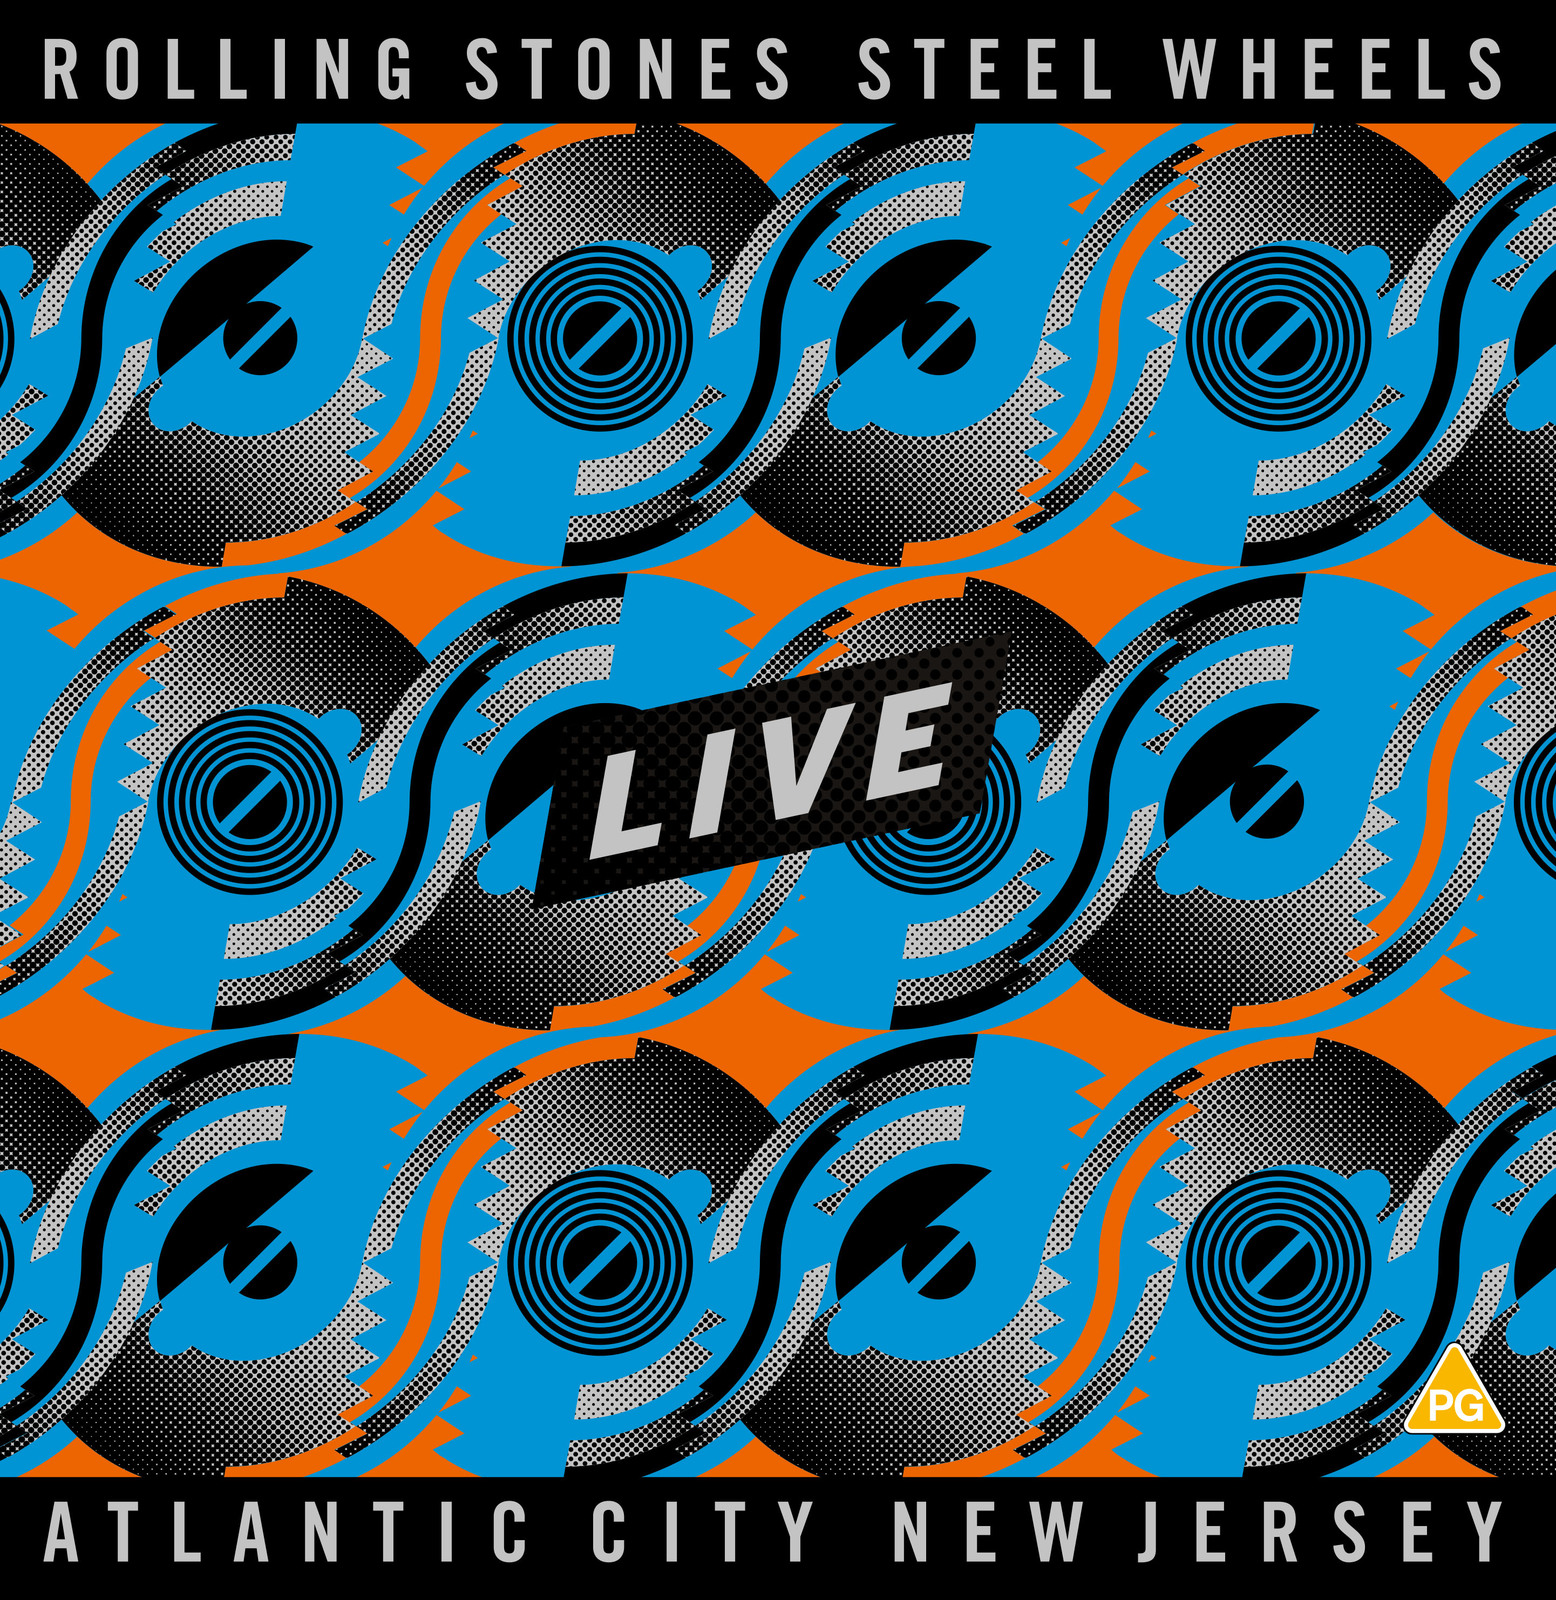 Steel Wheels Live - Limited Edition 6-Disc Set by The Rolling Stones image